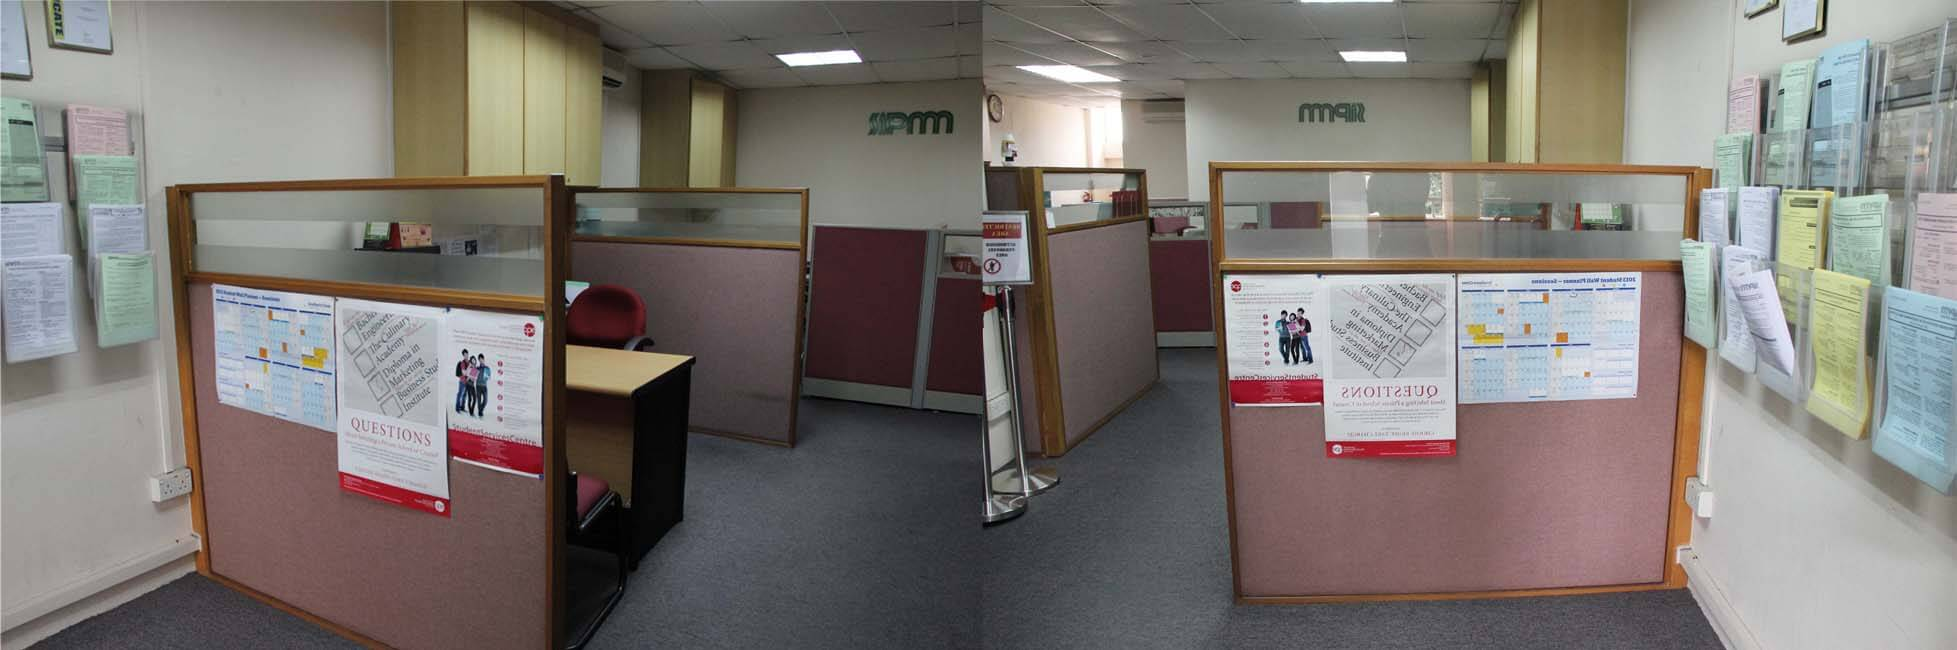 SIPMM Course Administration Office